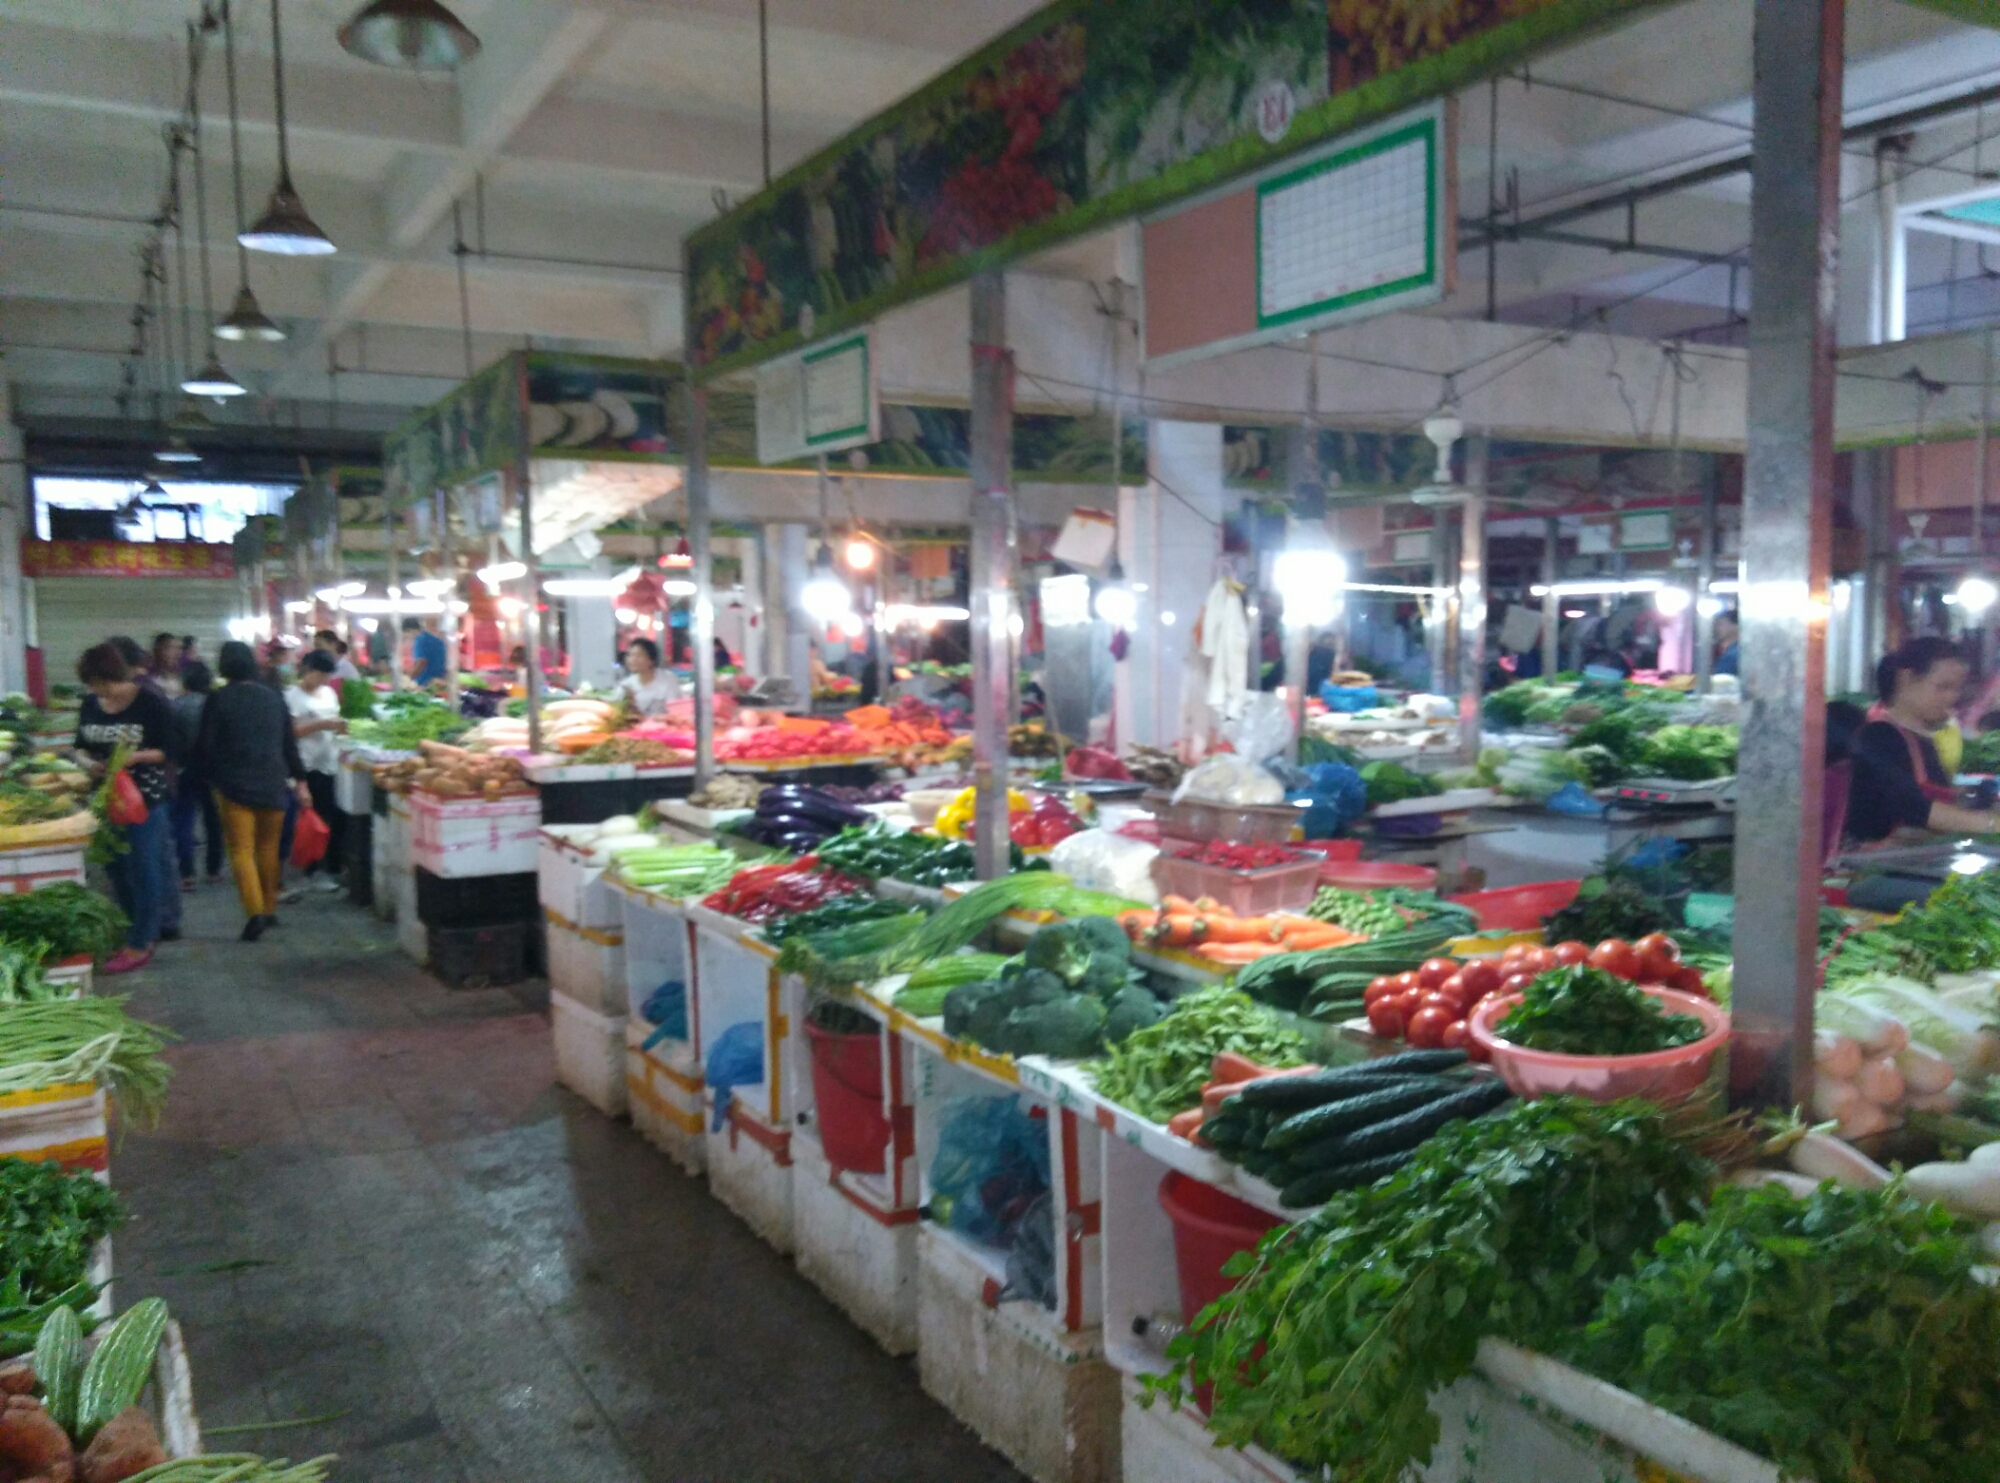 Daily Life in Guangdong: The Fresh Food Market